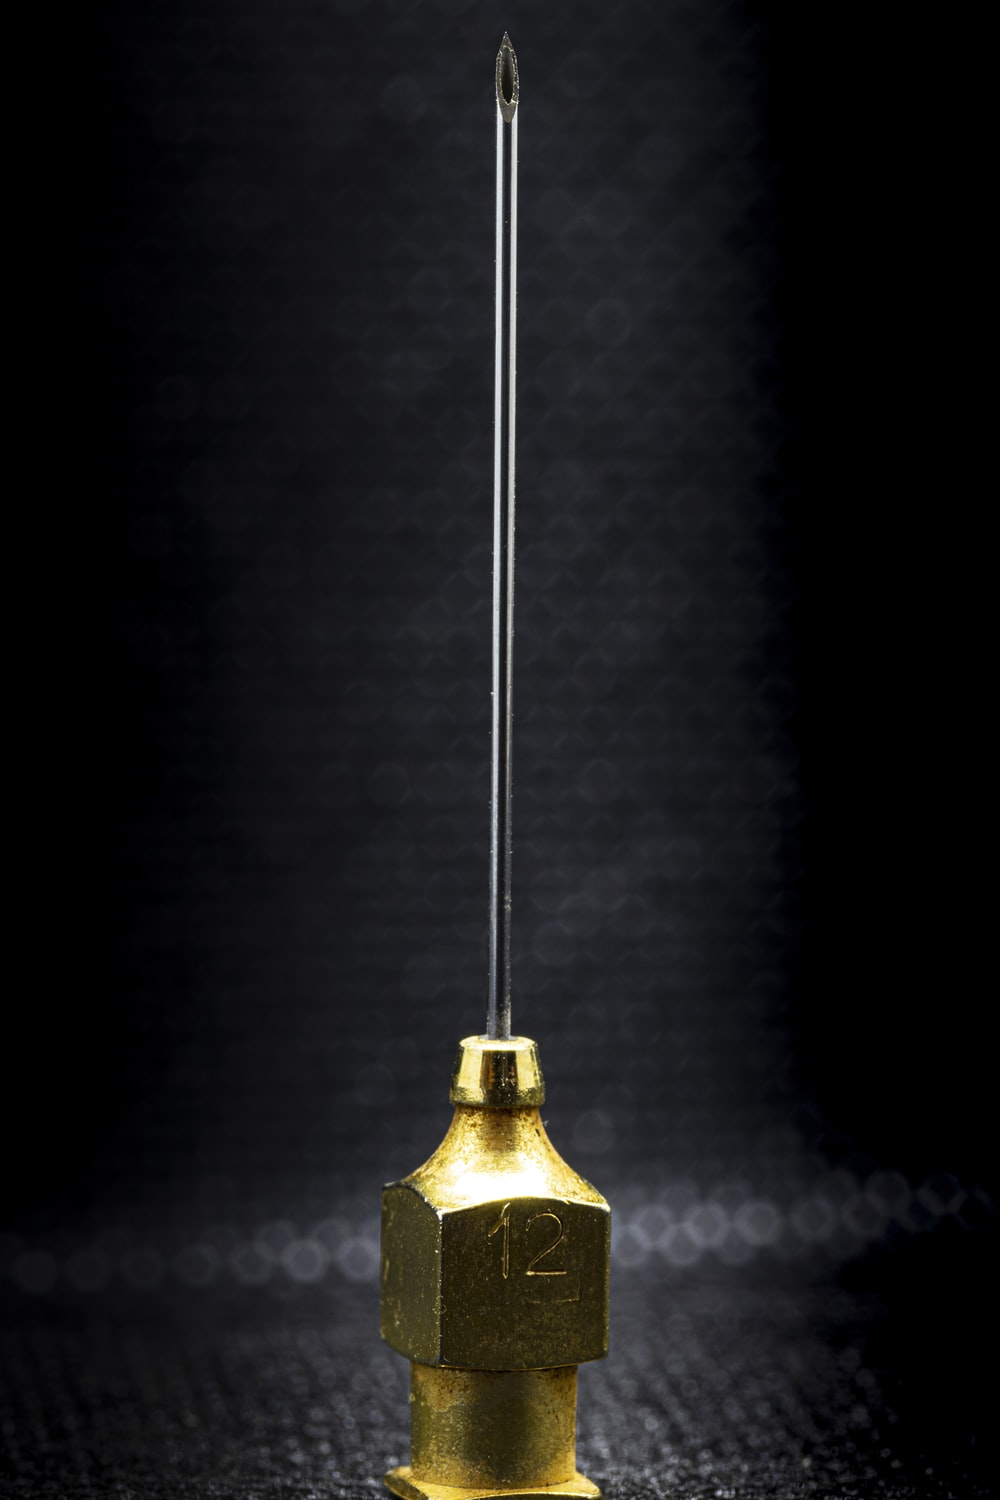 gold bell on black surface